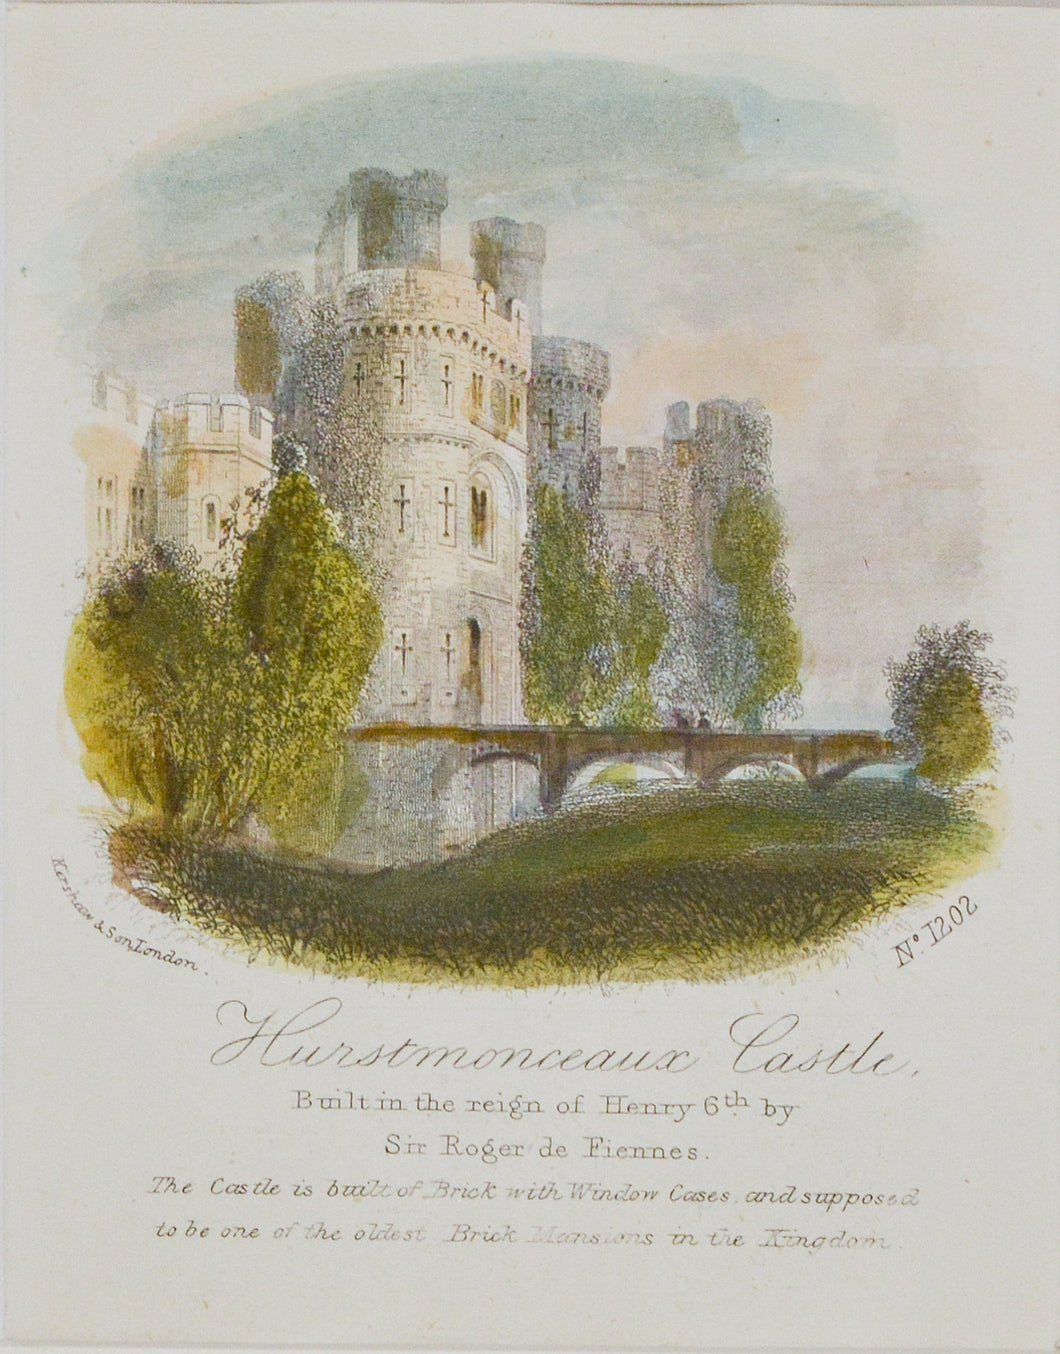 Hurstmonceaux Castle - Antique Steel Engraving circa 1870